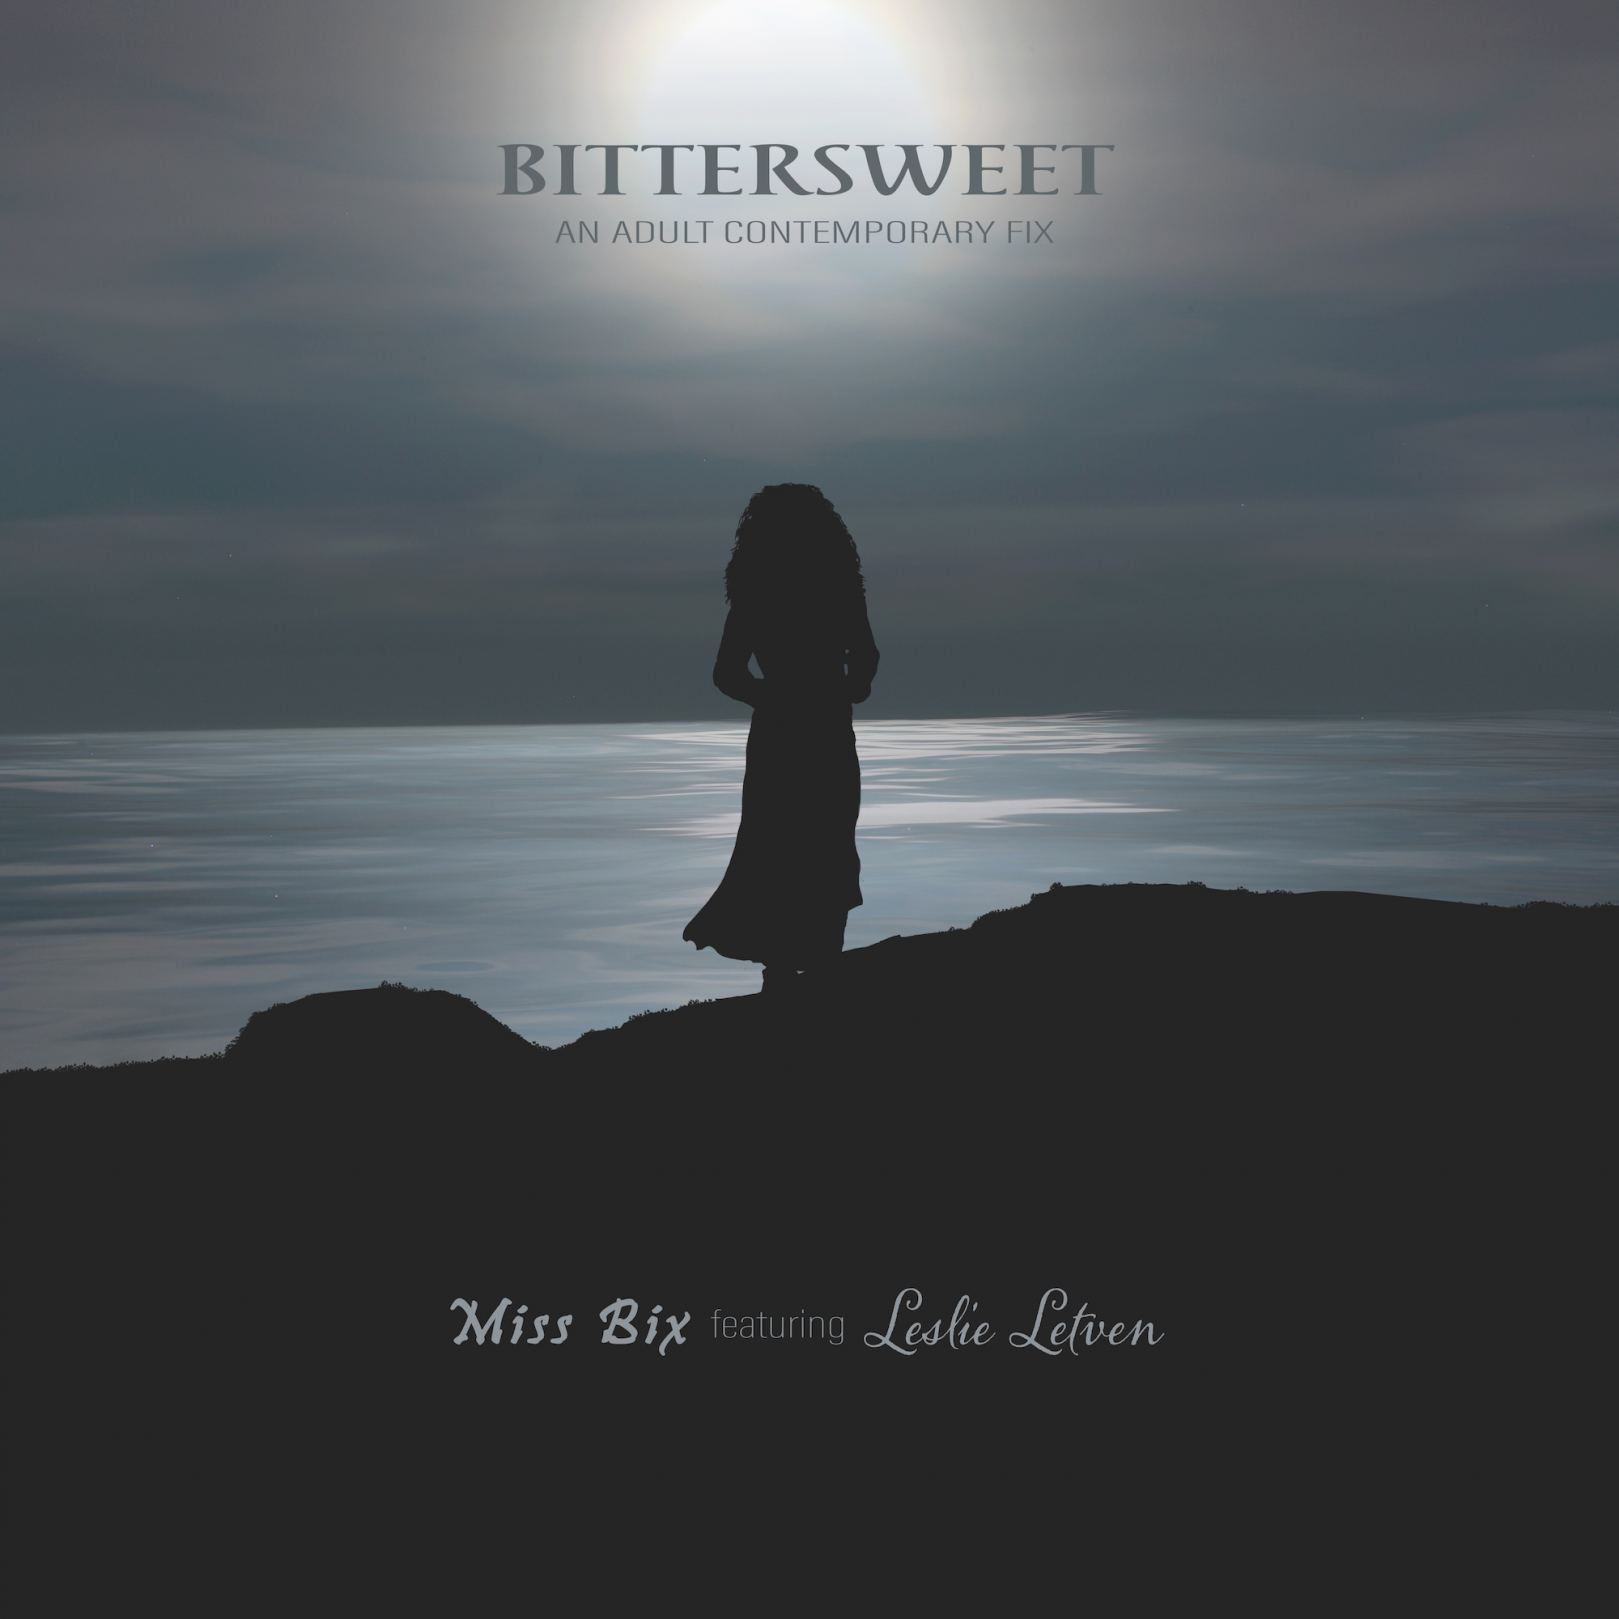 Bittersweet by Miss Bix, featuring Leslie Letven